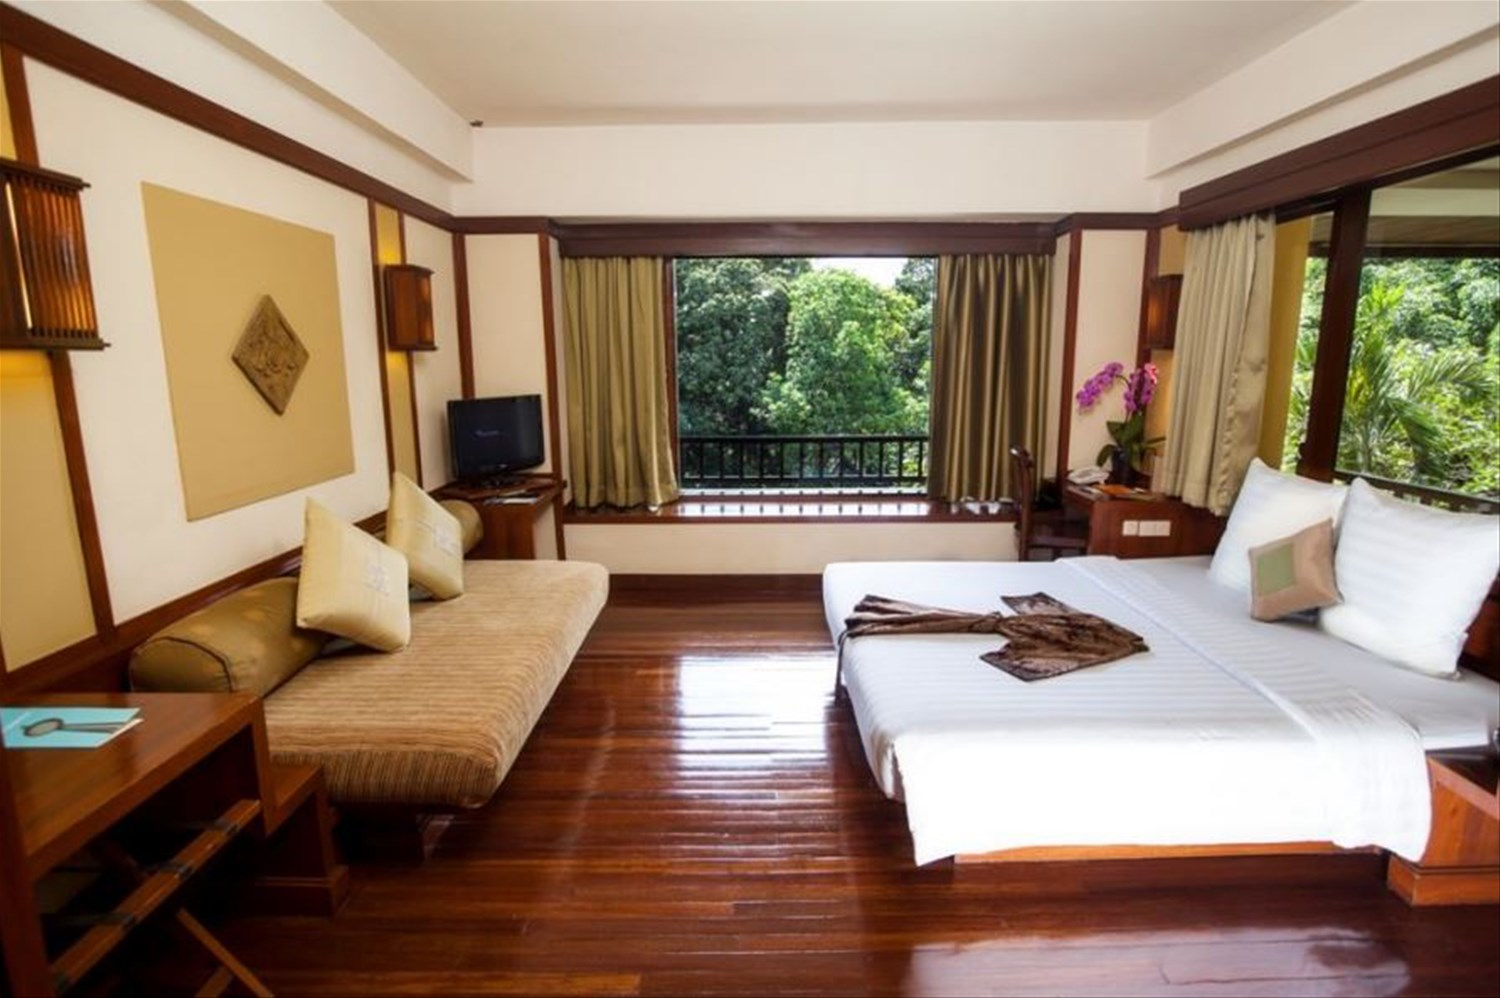 Novotel Bogor Golf Resort Hotel - room photo 12819886